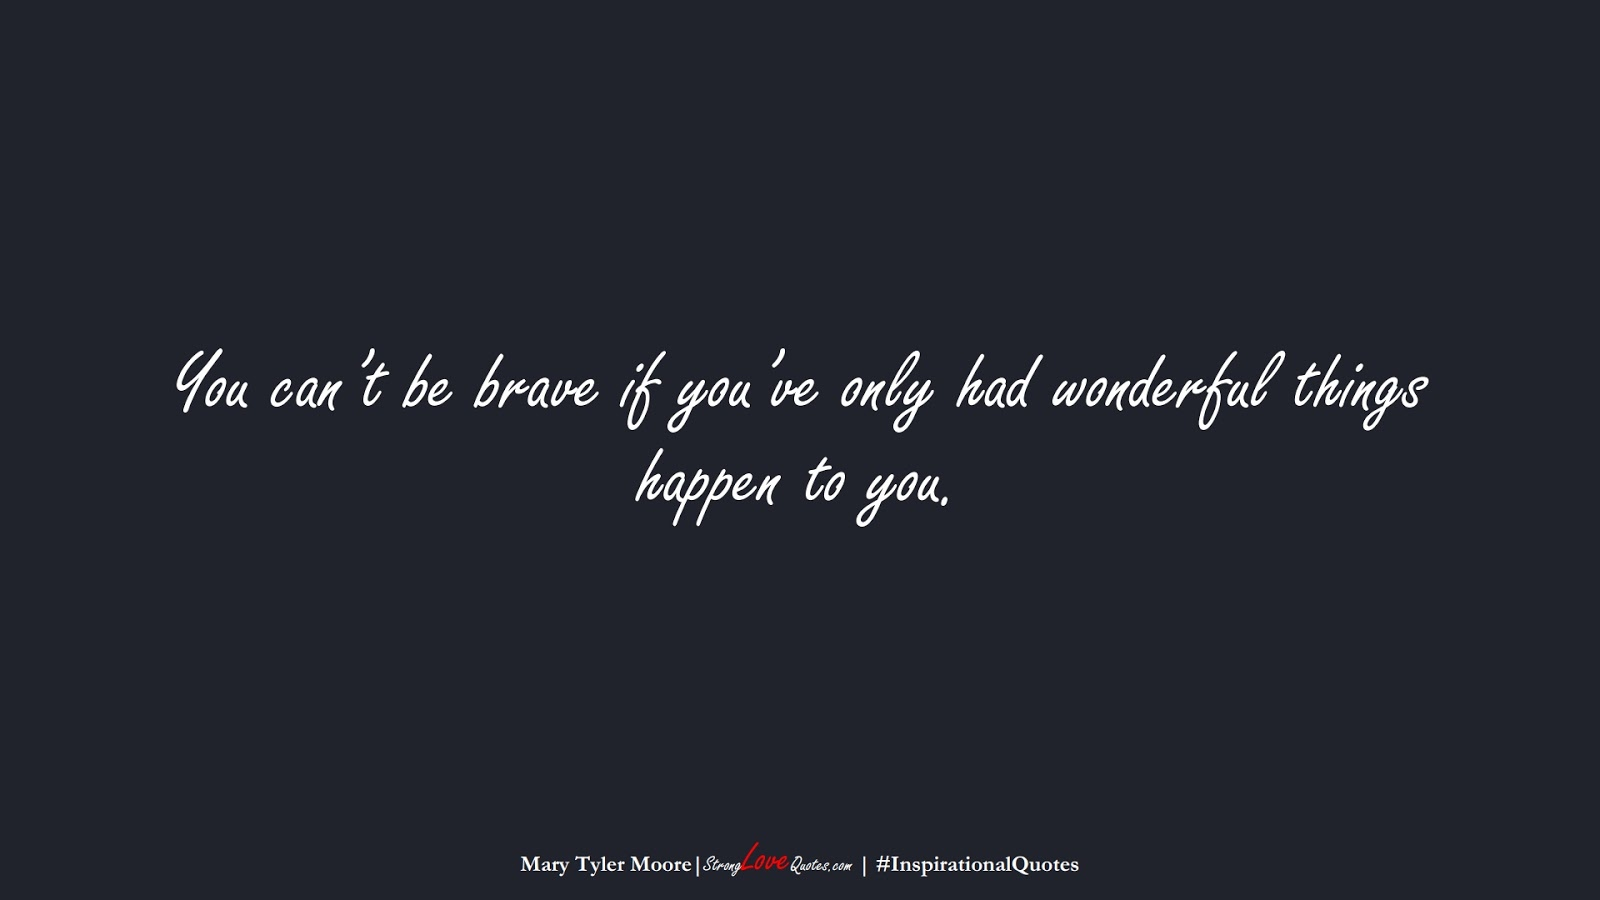 You can't be brave if you've only had wonderful things happen to you. (Mary Tyler Moore);  #InspirationalQuotes